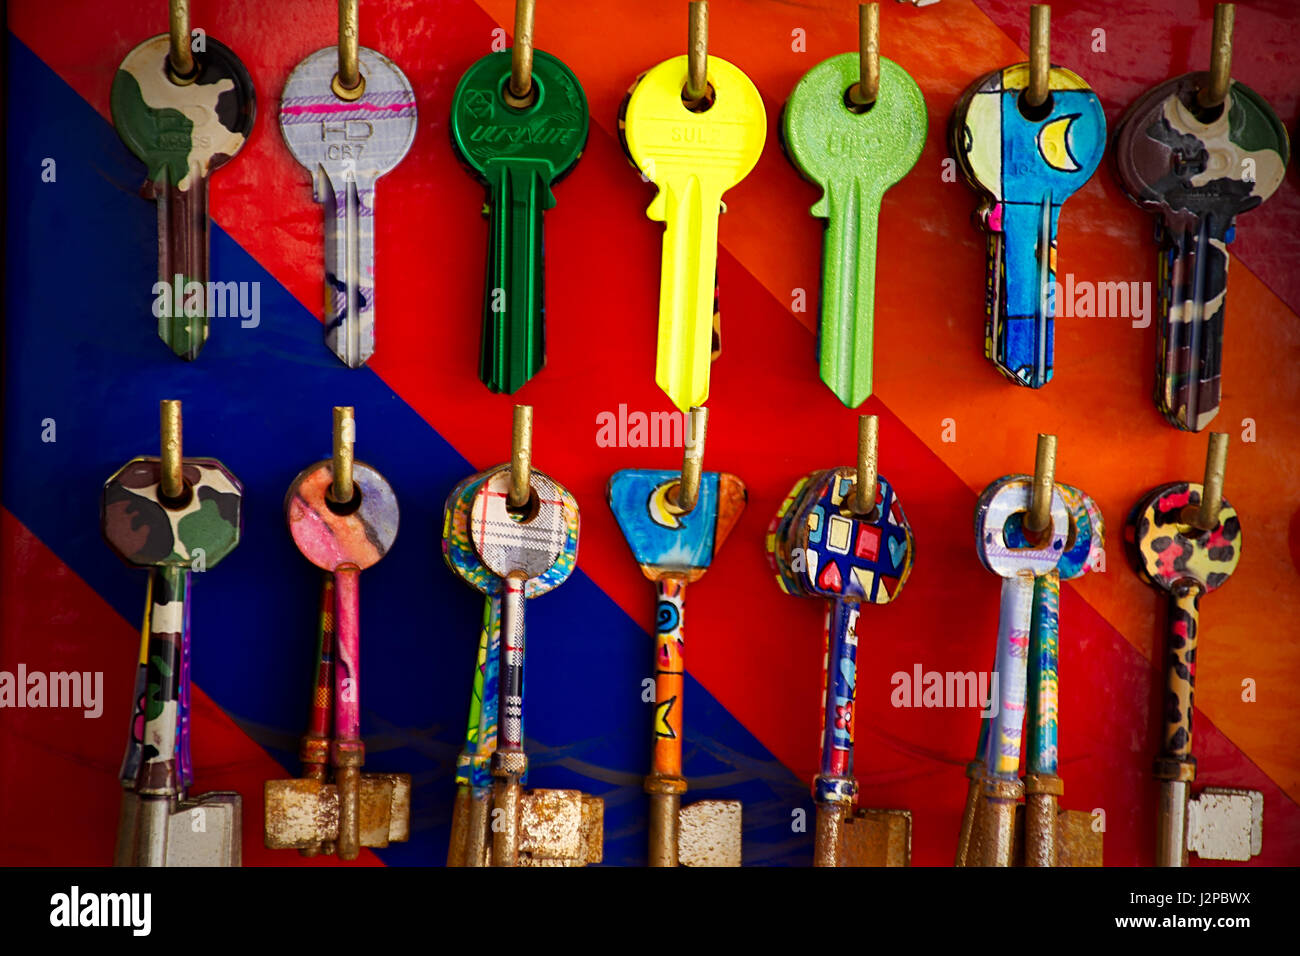 Old rusty , colourful keys hanging on hooks in key cutting service point.Vibrant colors abstract.Locksmith Uk. - Stock Image